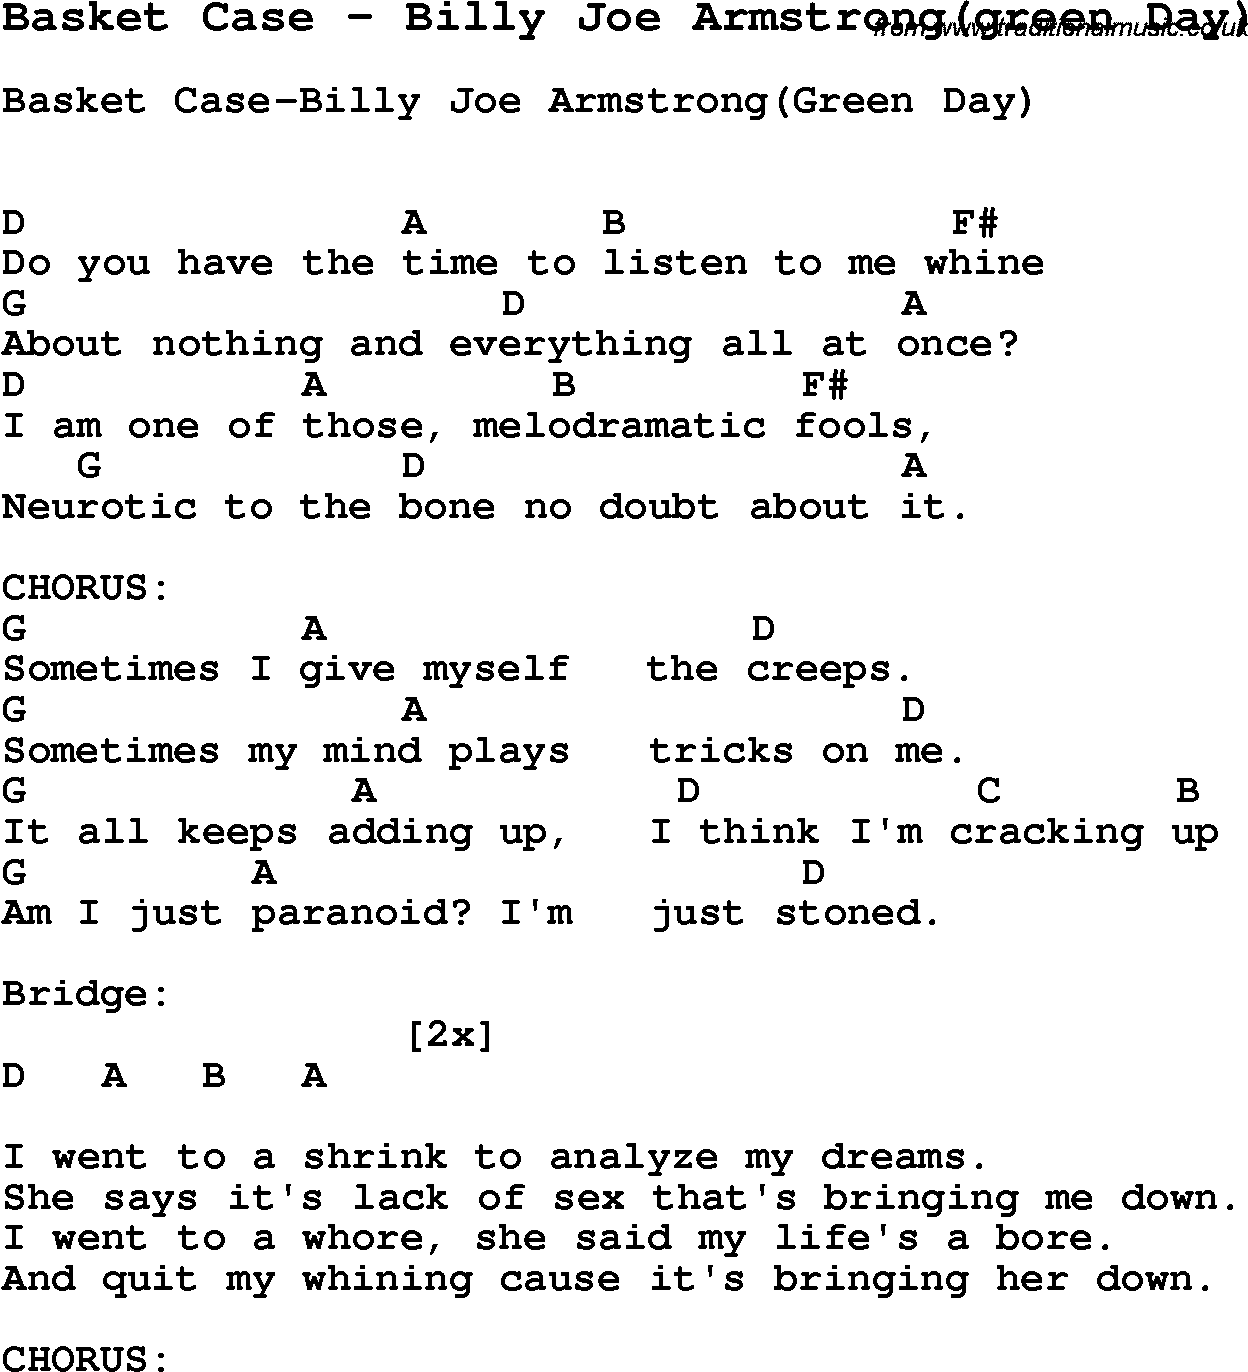 Song Basket Case by Billy Joe Armstrong(green Day), song lyric for vocal performance plus ...